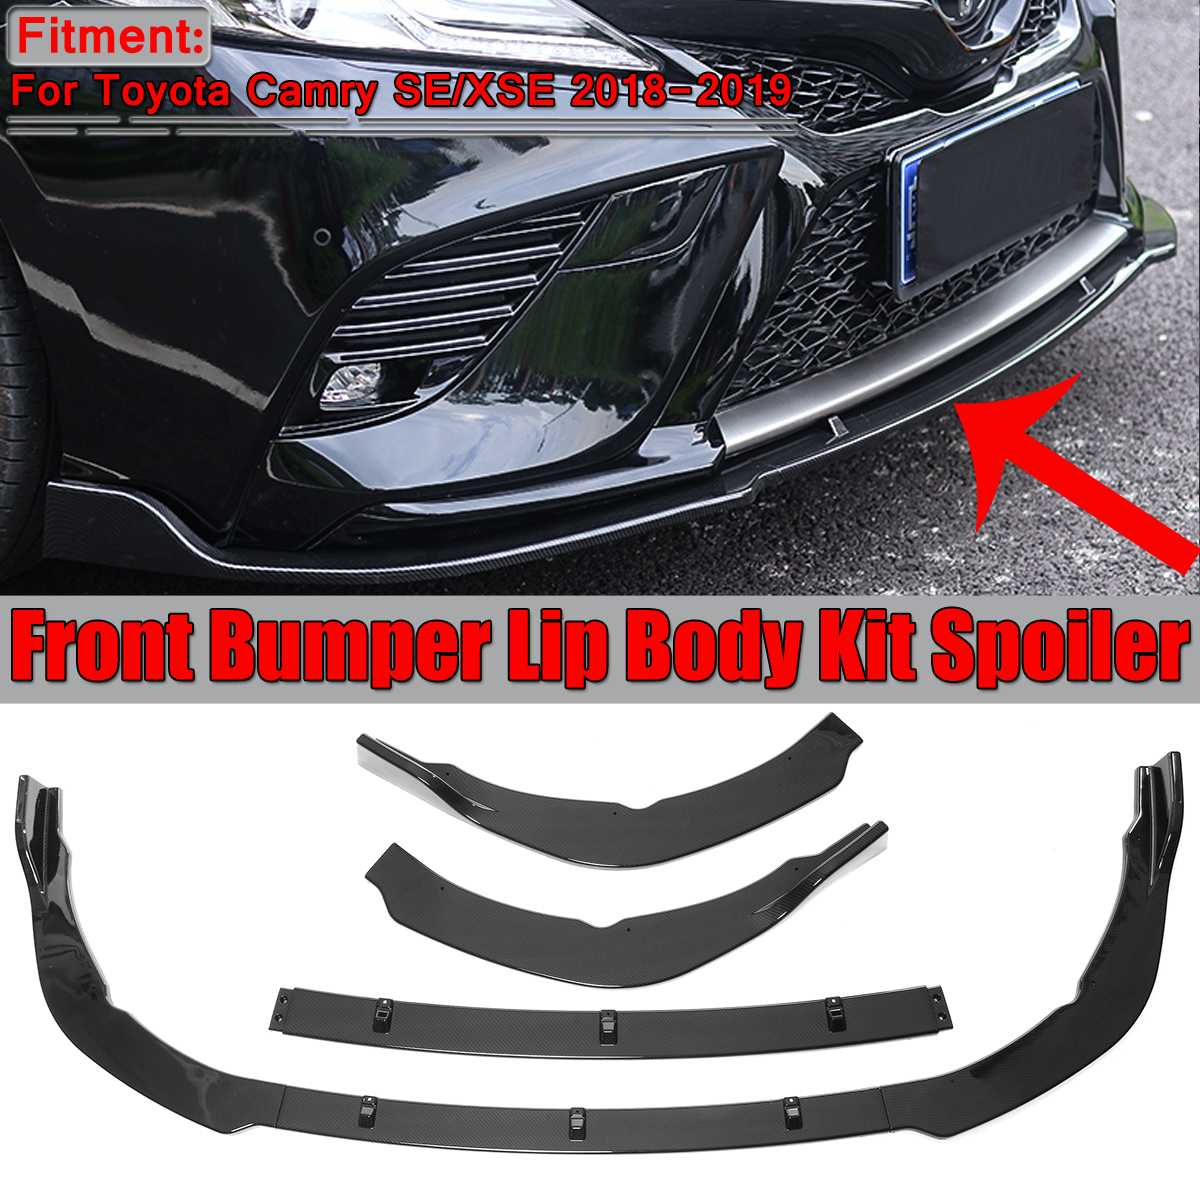 Rear Body Bumper Lip Diffuser Spoiler Lid Add On Extension Body Kit Durable ABS